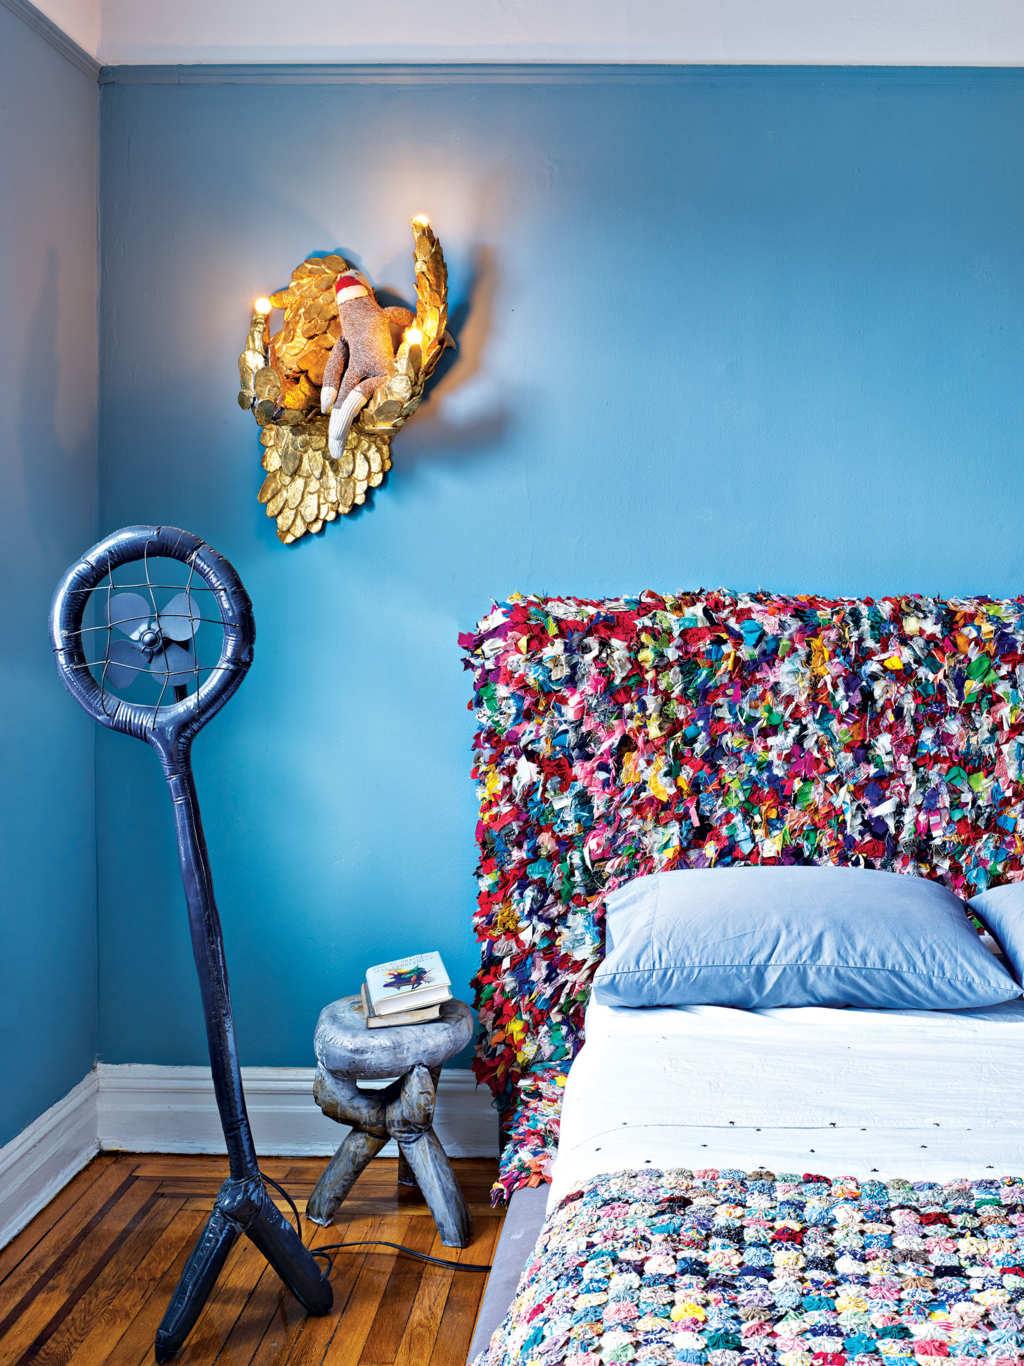 ArtistMisha Kahn states that he needs to beoverwhelmed by how colorful everything is in a design project. design project A colorful design project by Misha Kahn A colorful design project by Misha Kahn I Lobo you 4